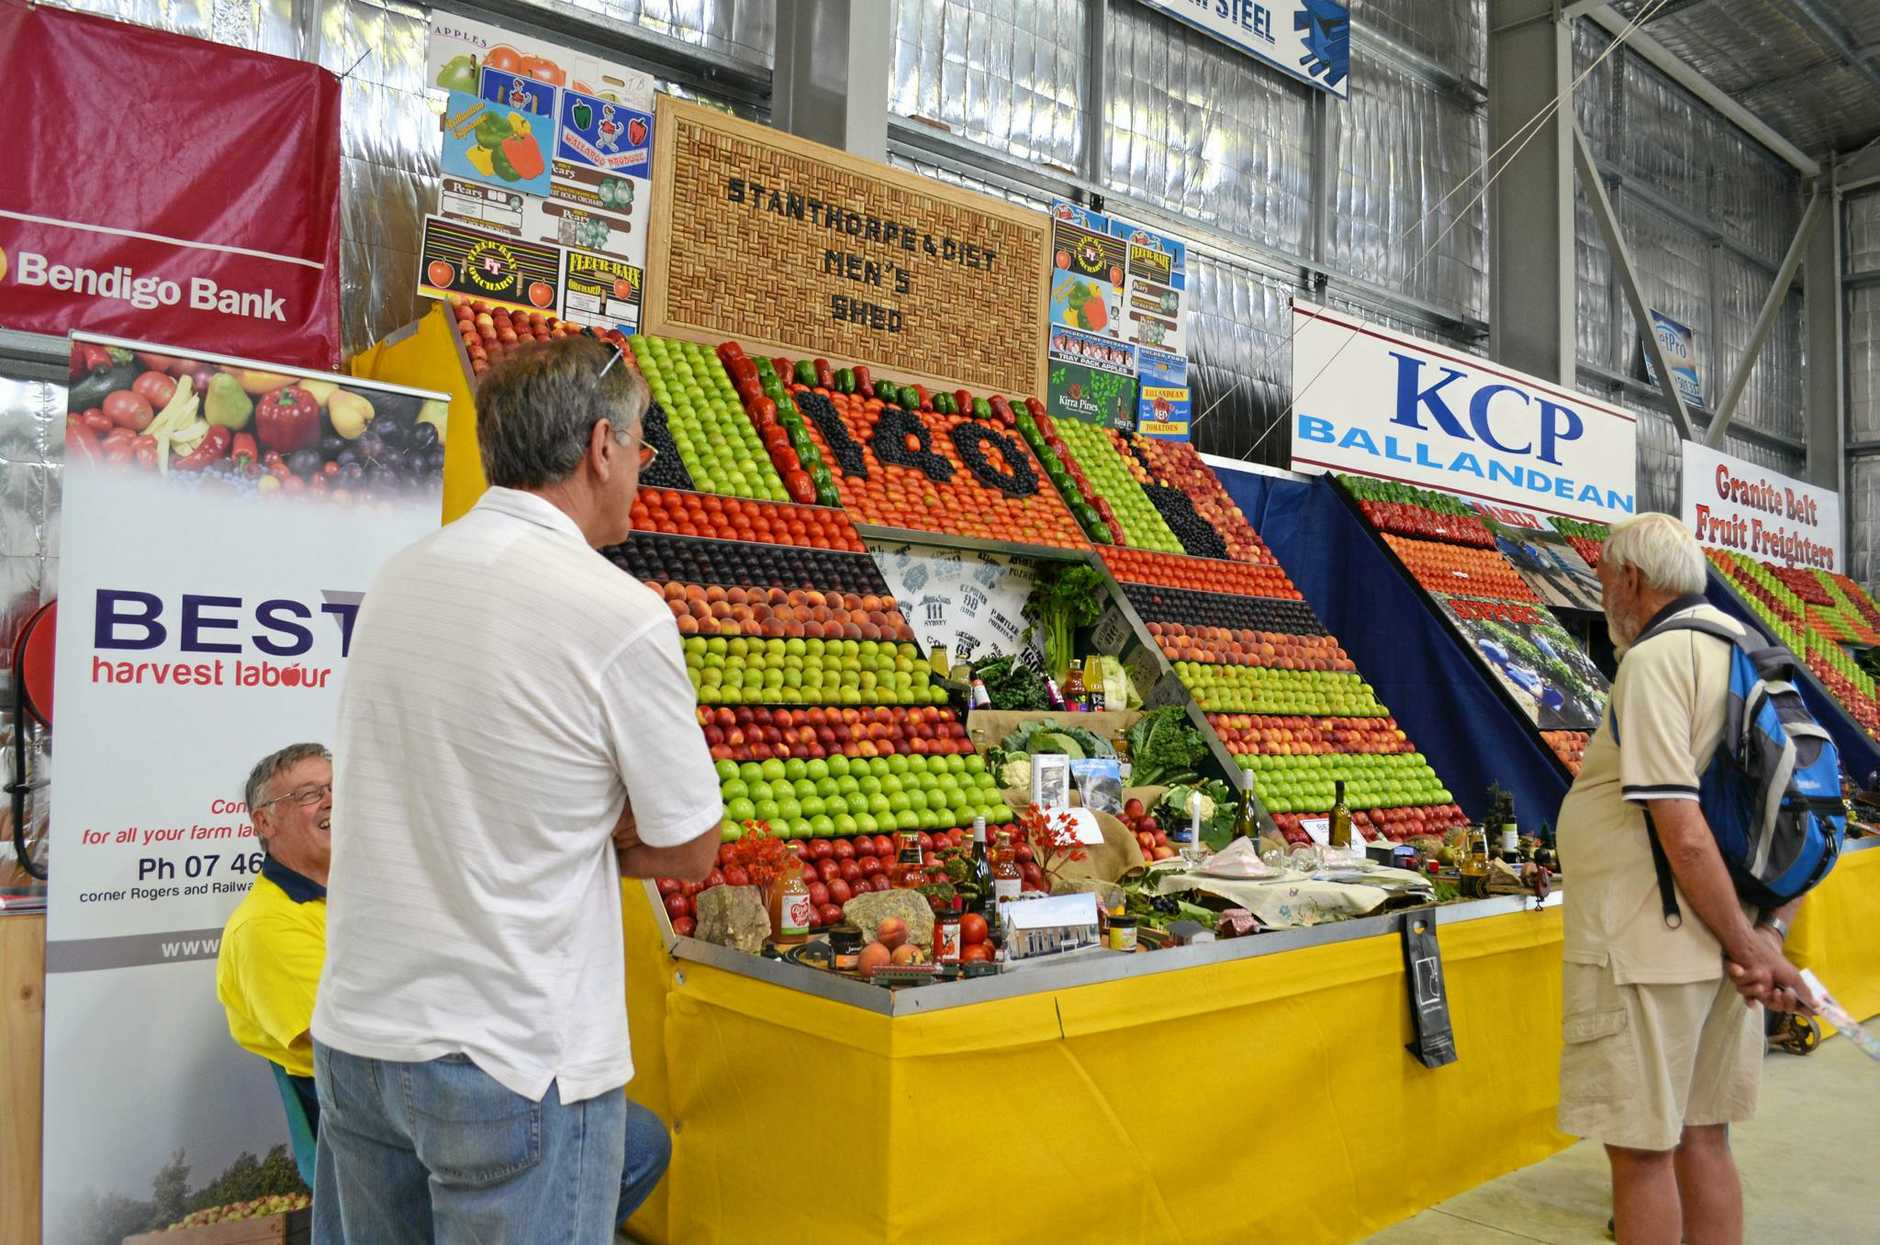 Guests admiring the fruit and veg wall displays at the JJ Richards and Sons 2016 Stanthorpe Show.